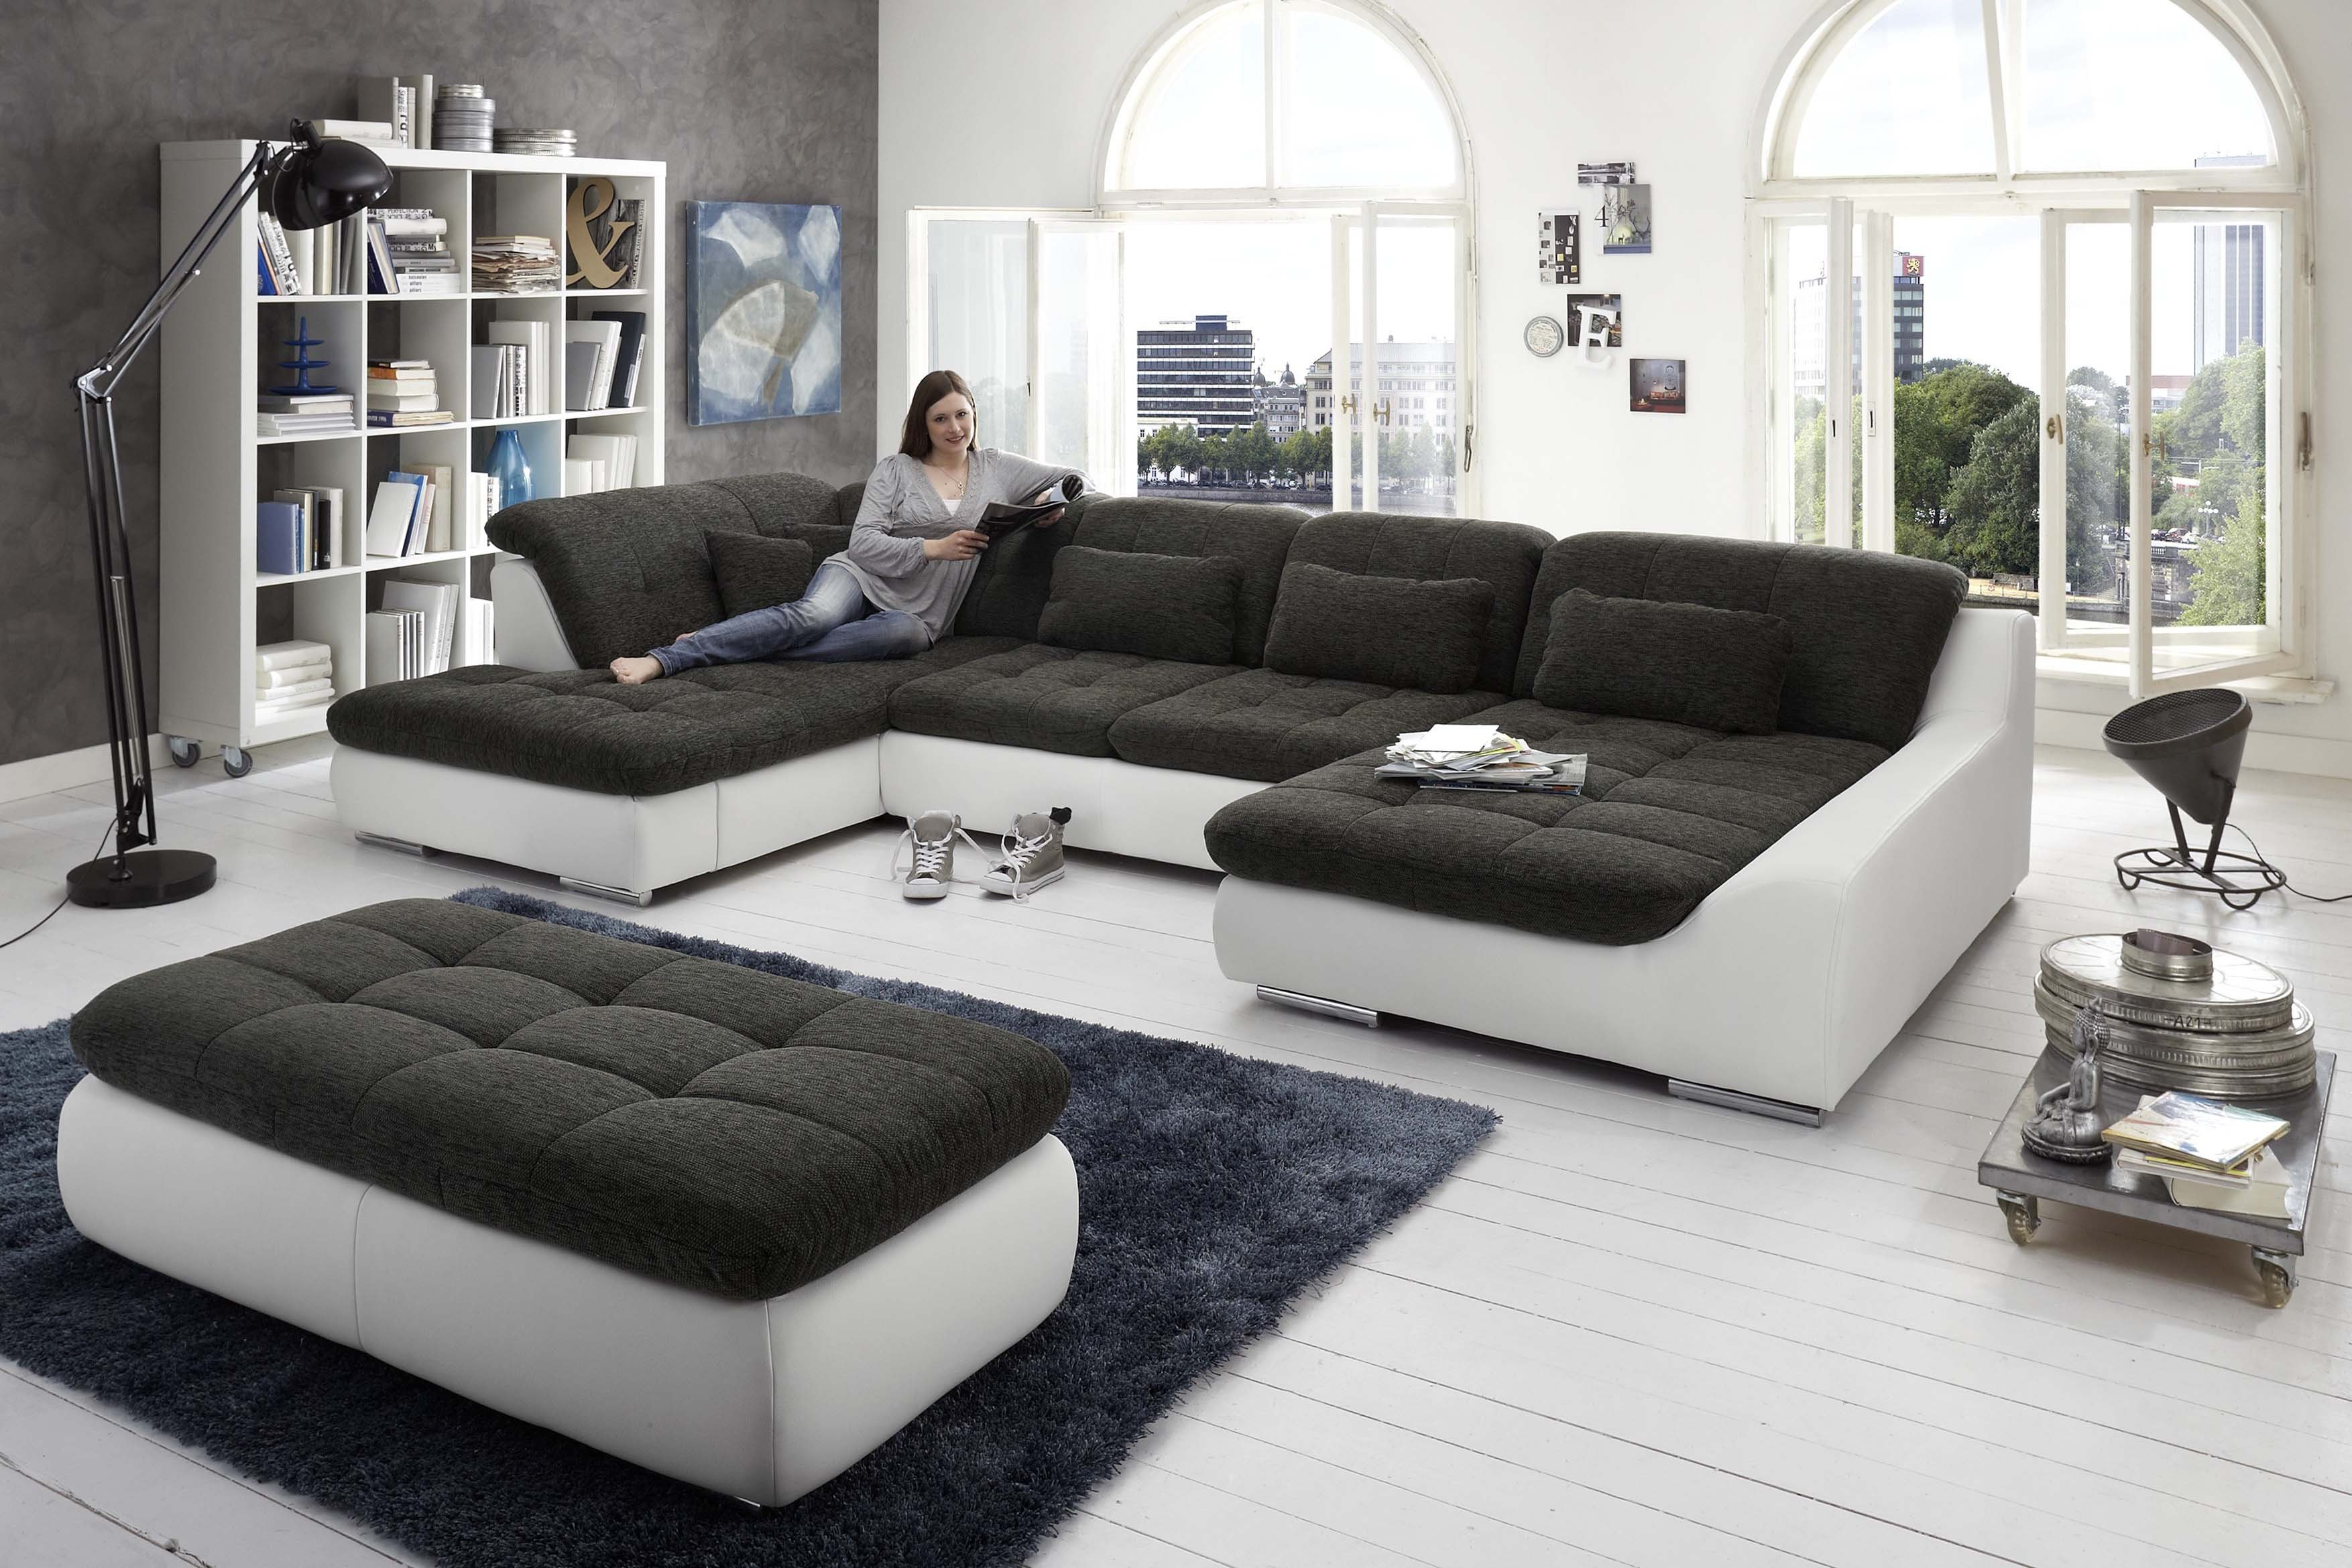 spike von megapol wohnlandschaft snow slate polsterm bel g nstig online kaufen sofa couch. Black Bedroom Furniture Sets. Home Design Ideas